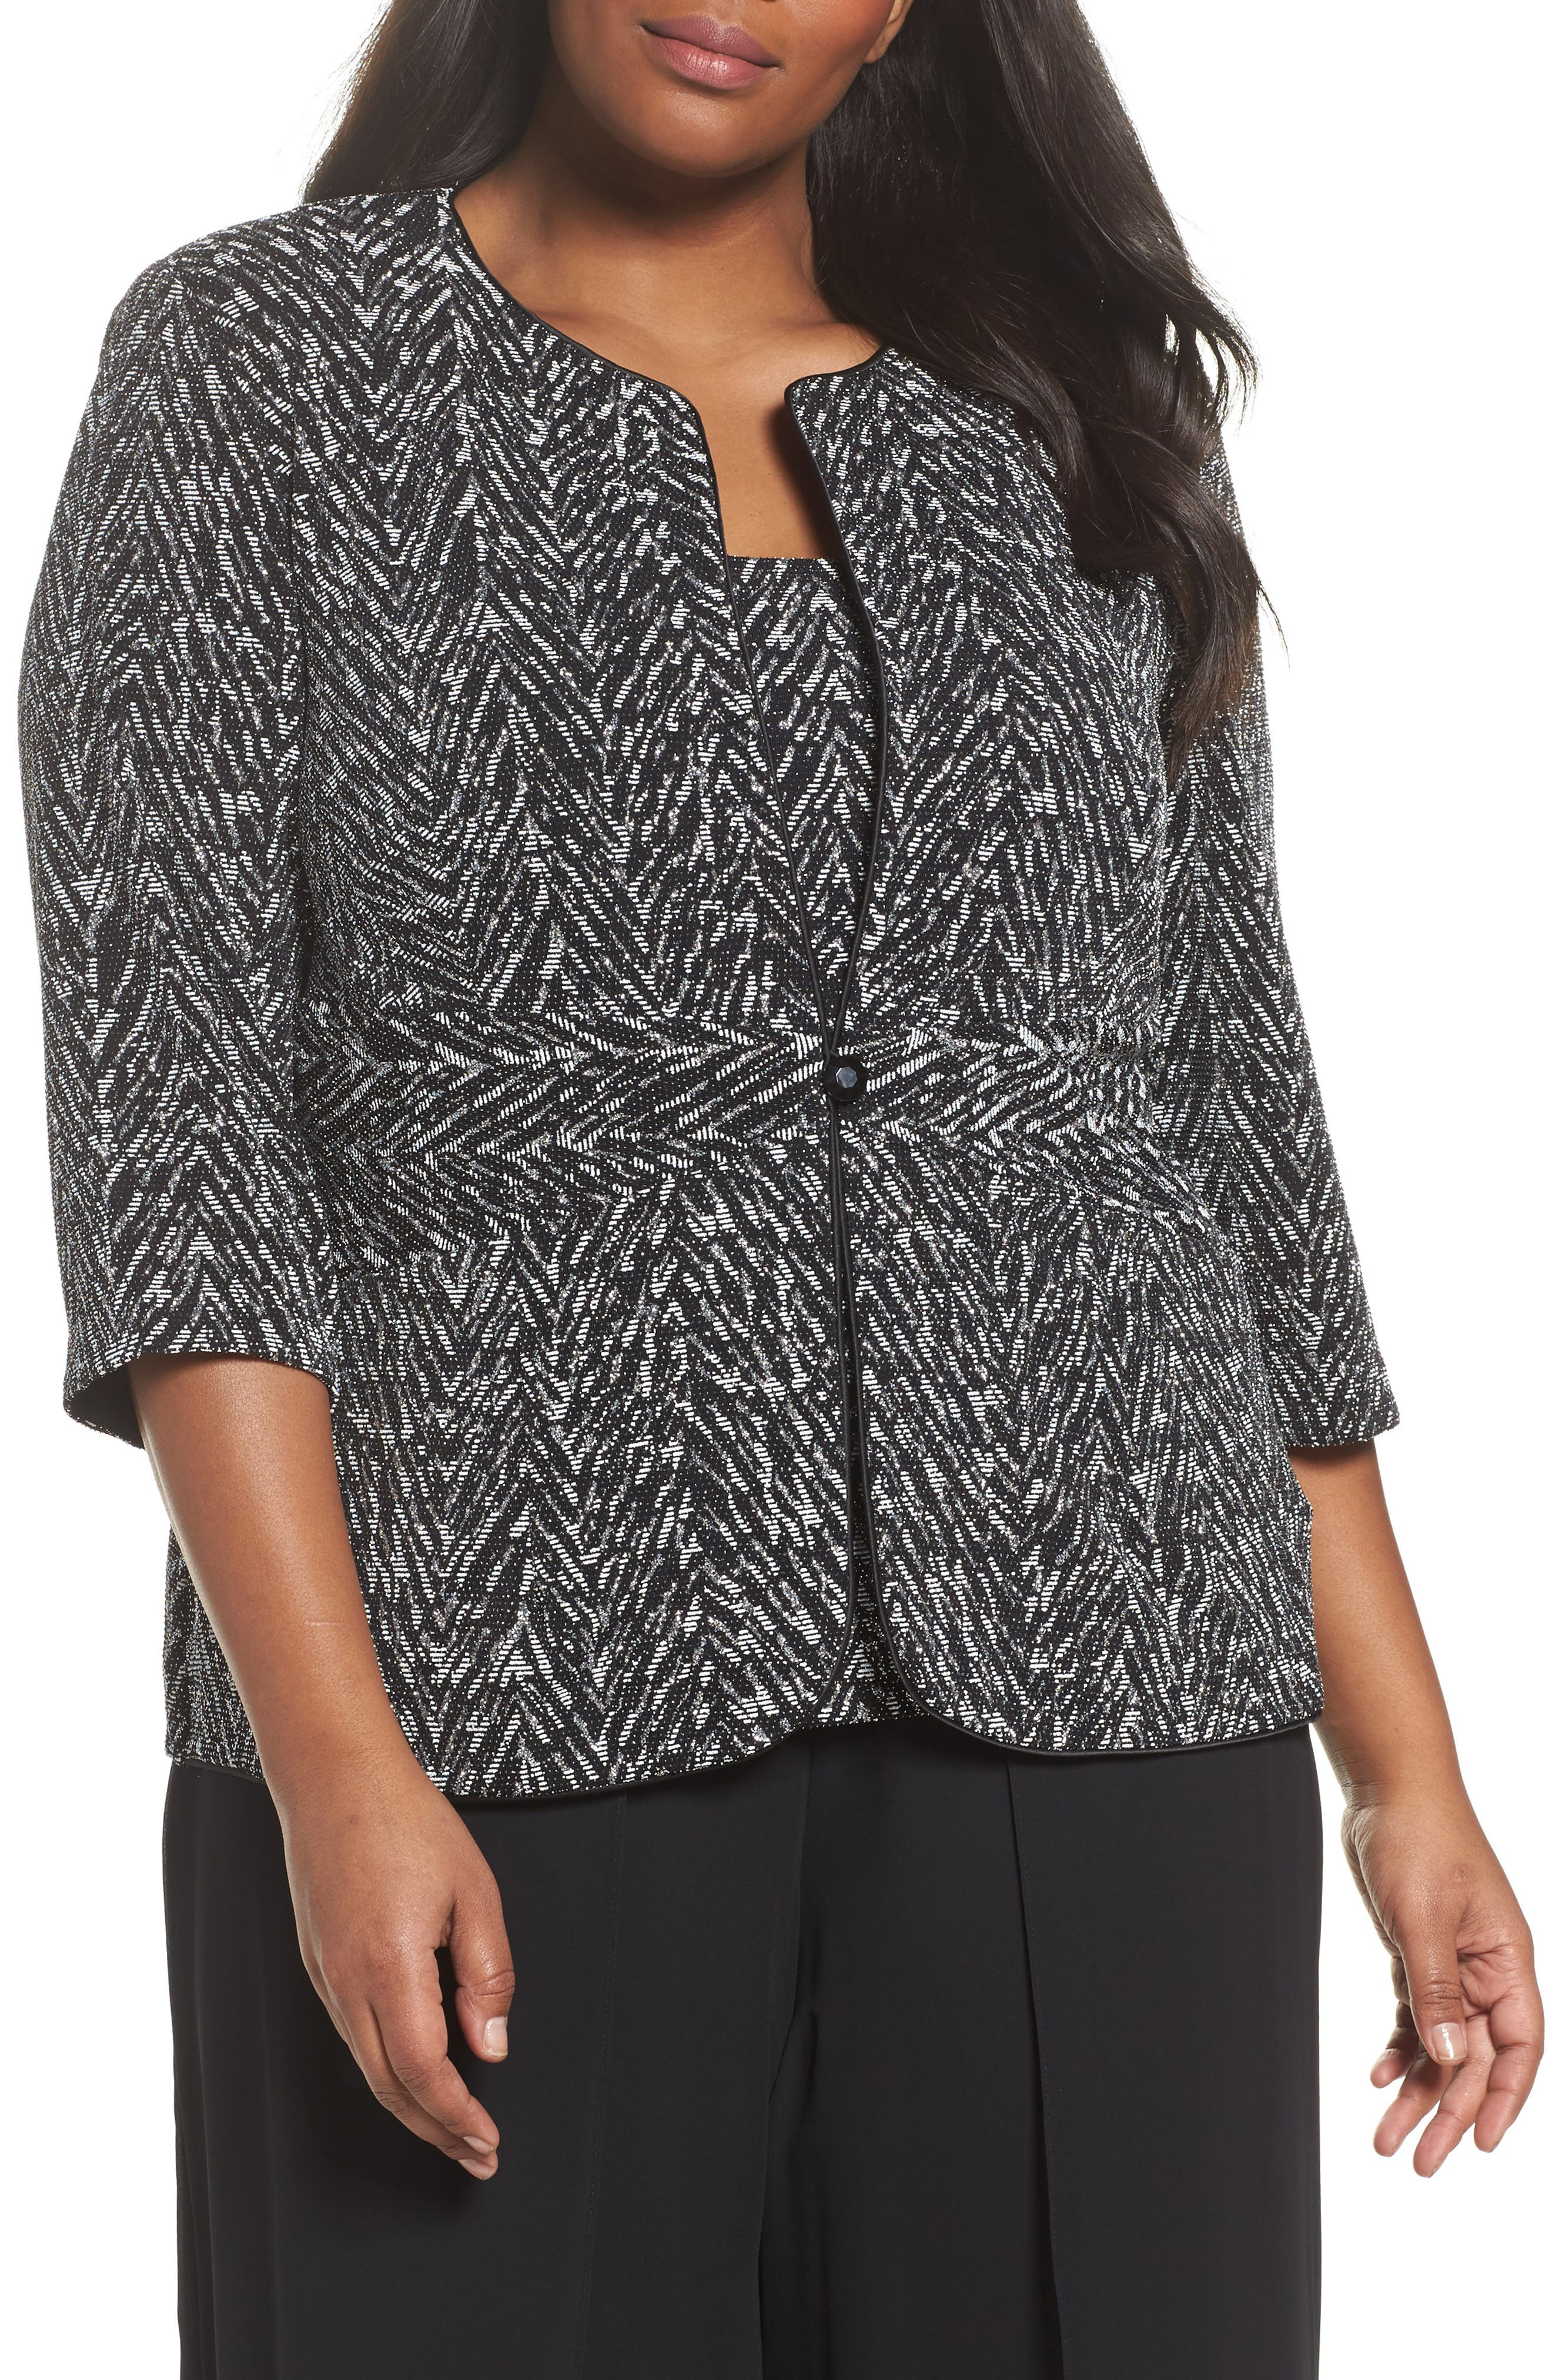 Jacquard Twinset,                         Main,                         color, Black/ White